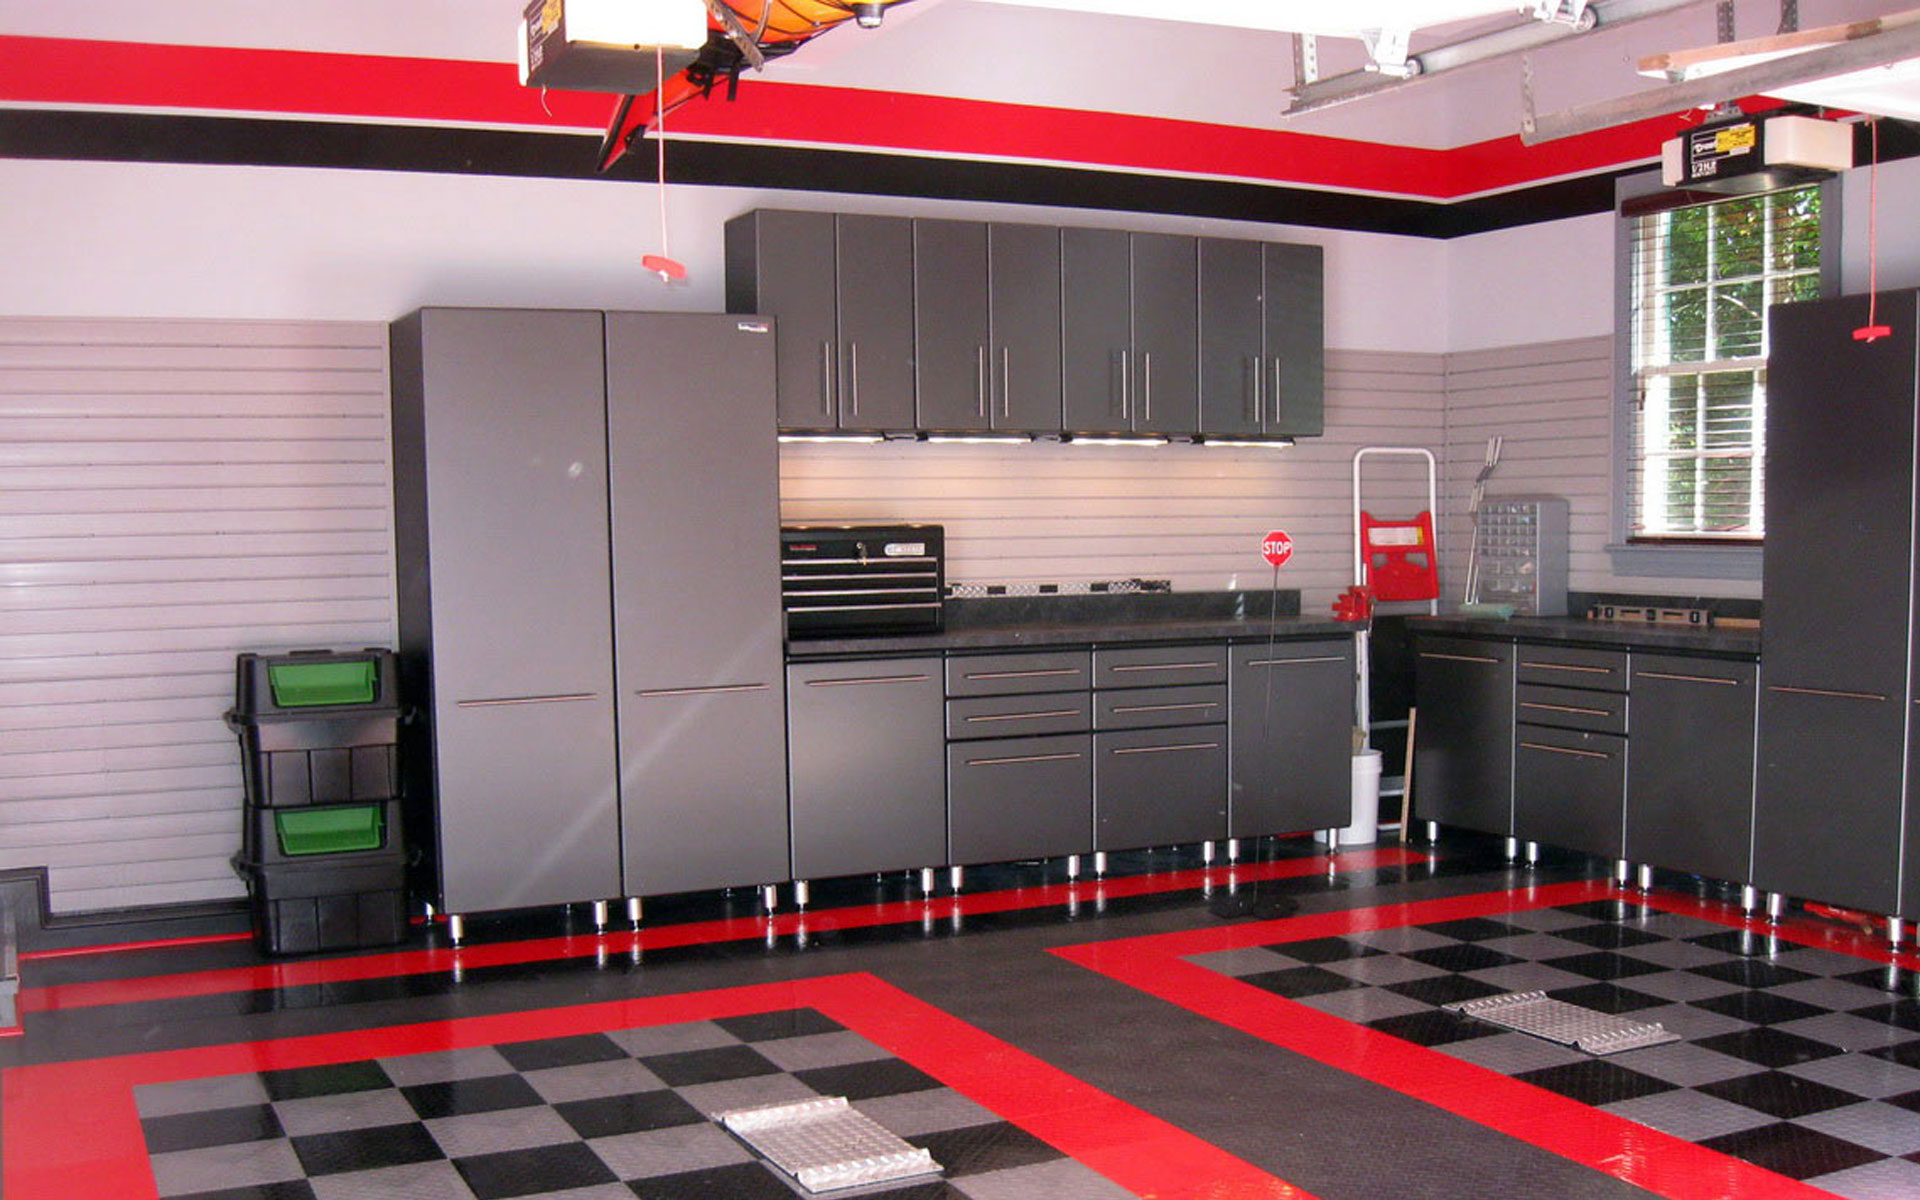 Modern kitchen interior with red color theme